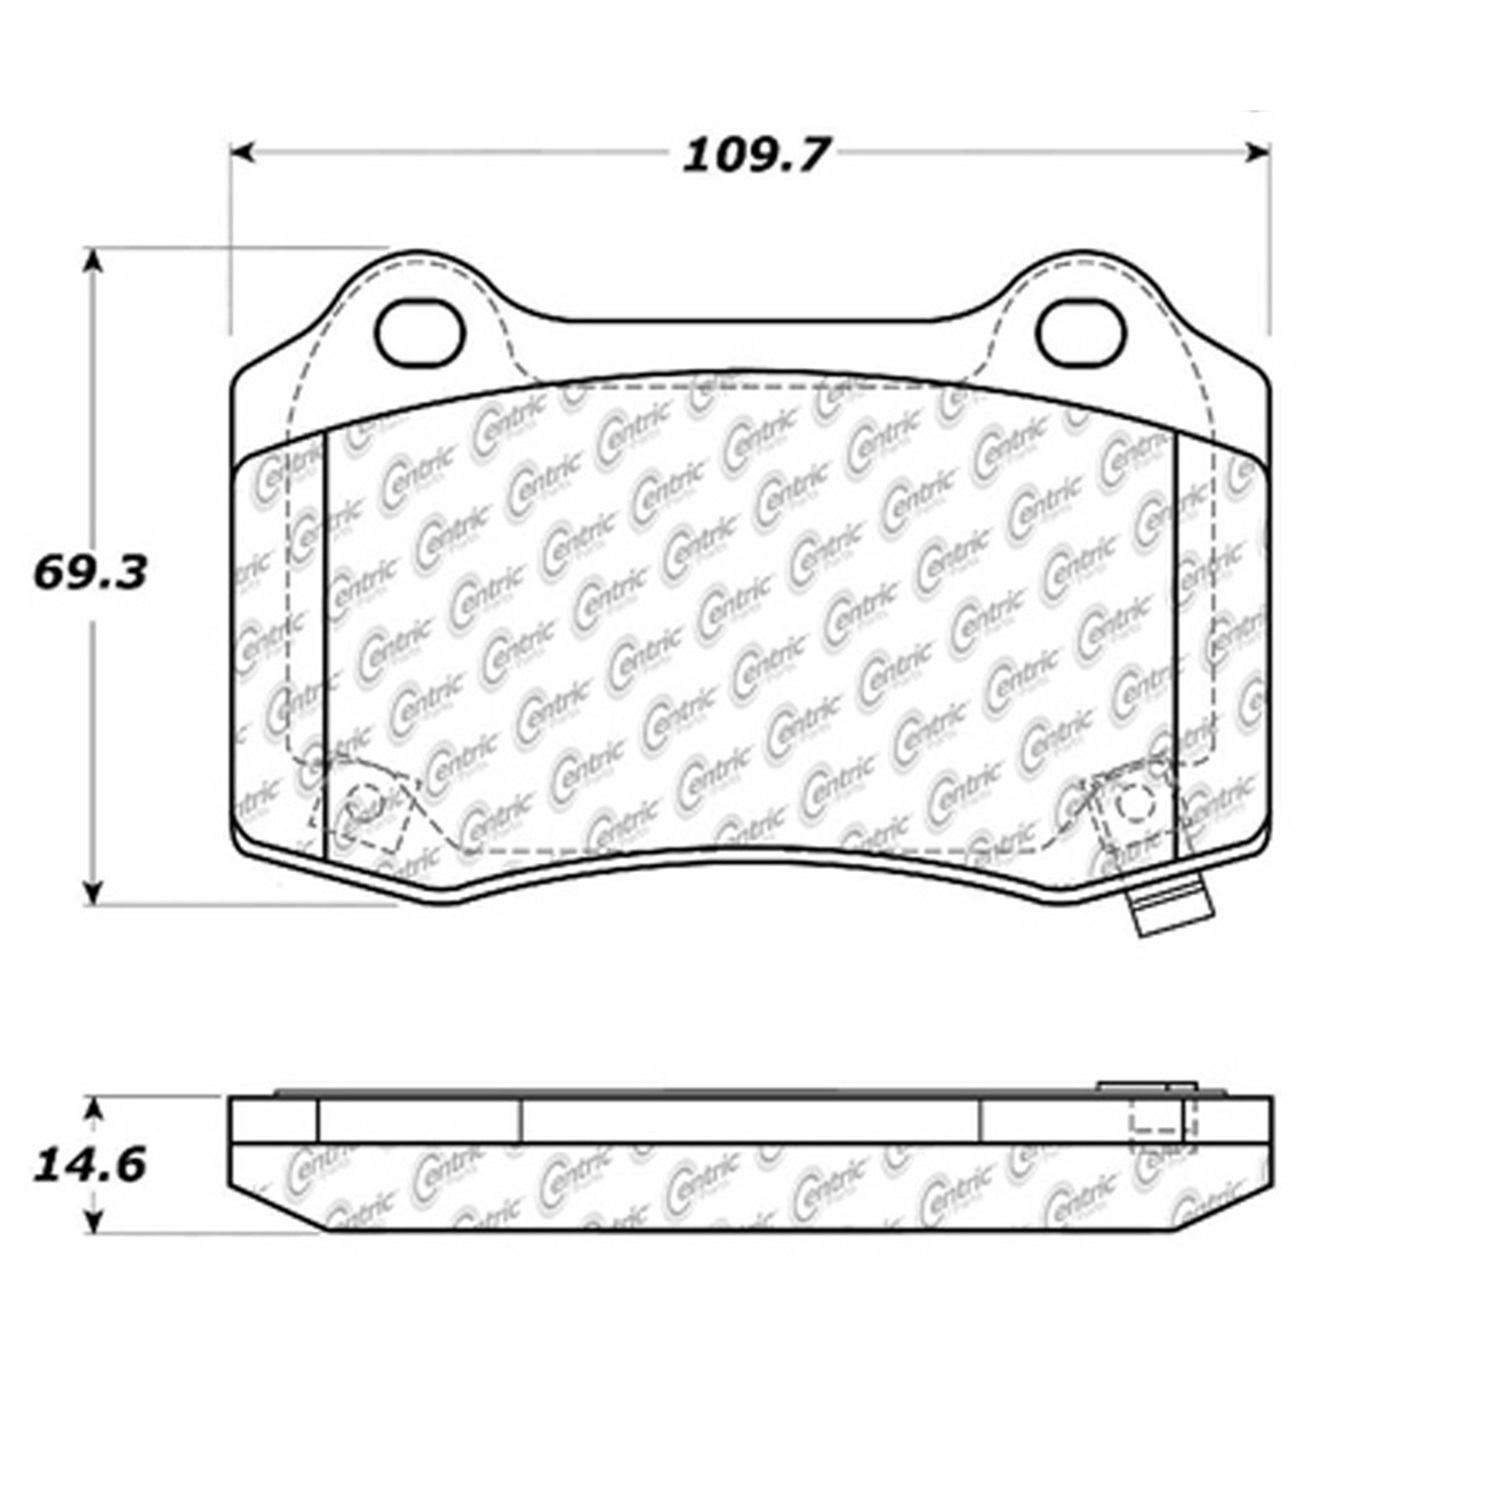 StopTech 104.10530 Disc Brake Pad